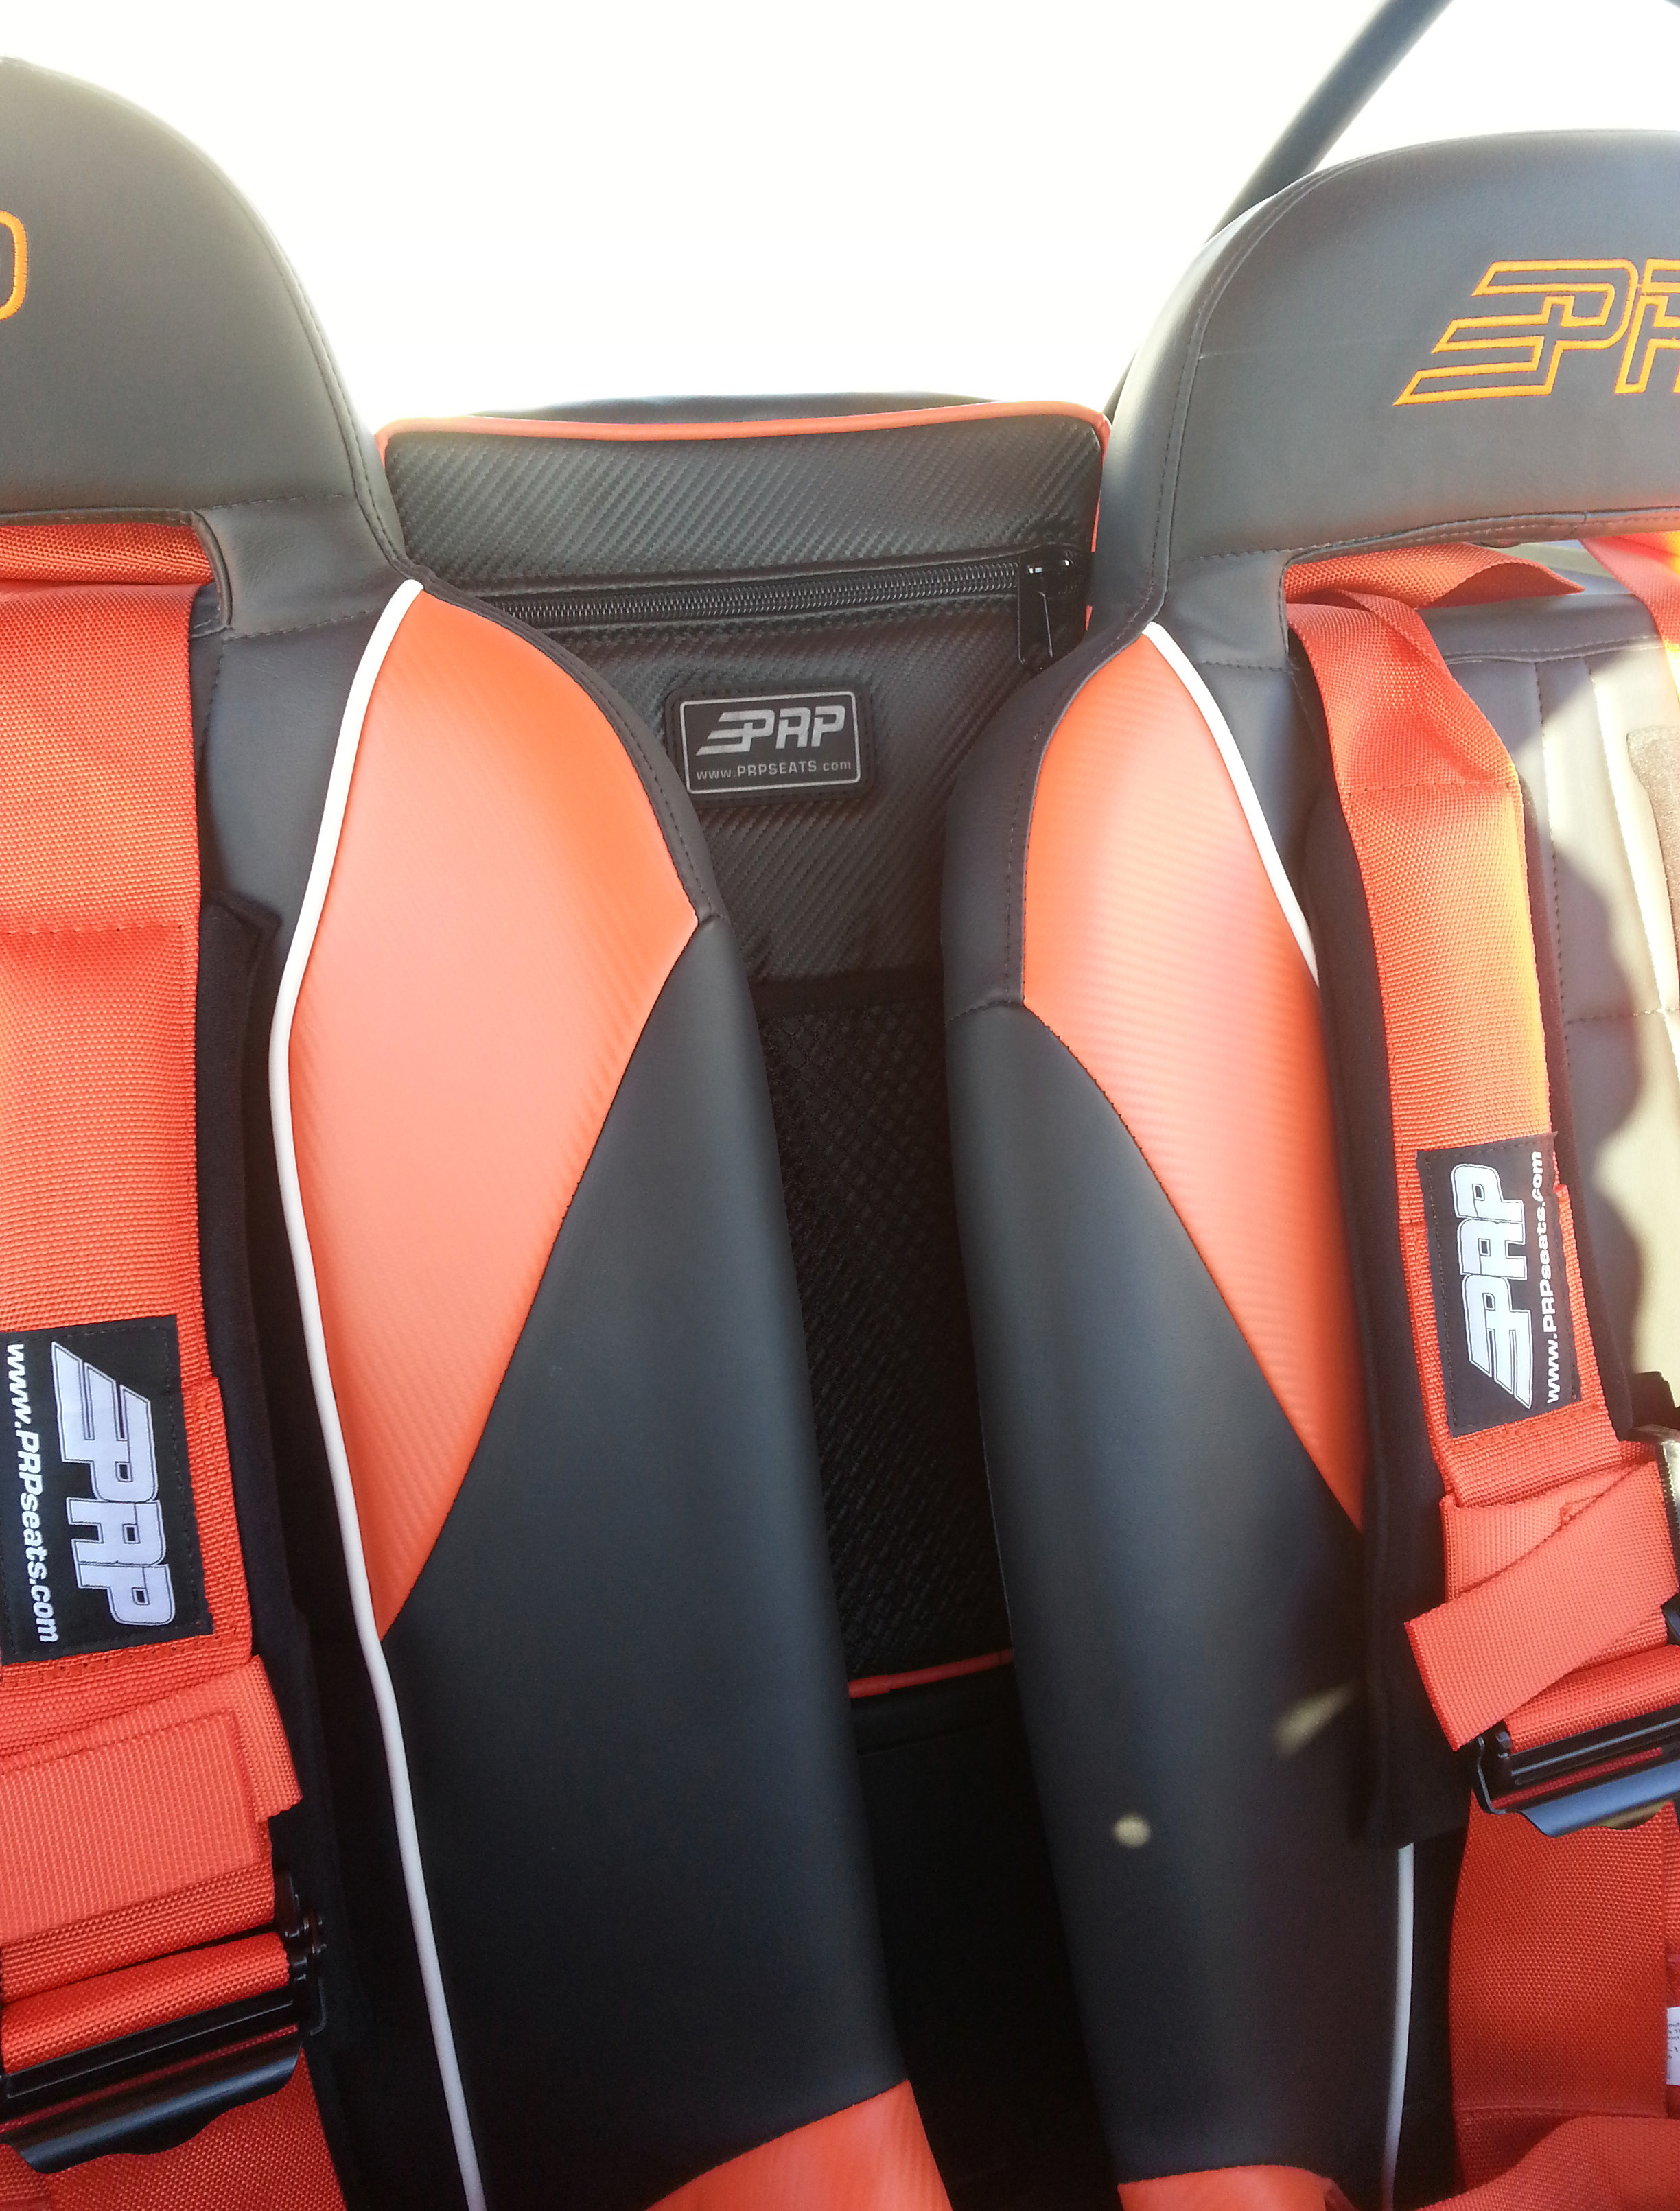 Rzr Center Bag Prp Seats